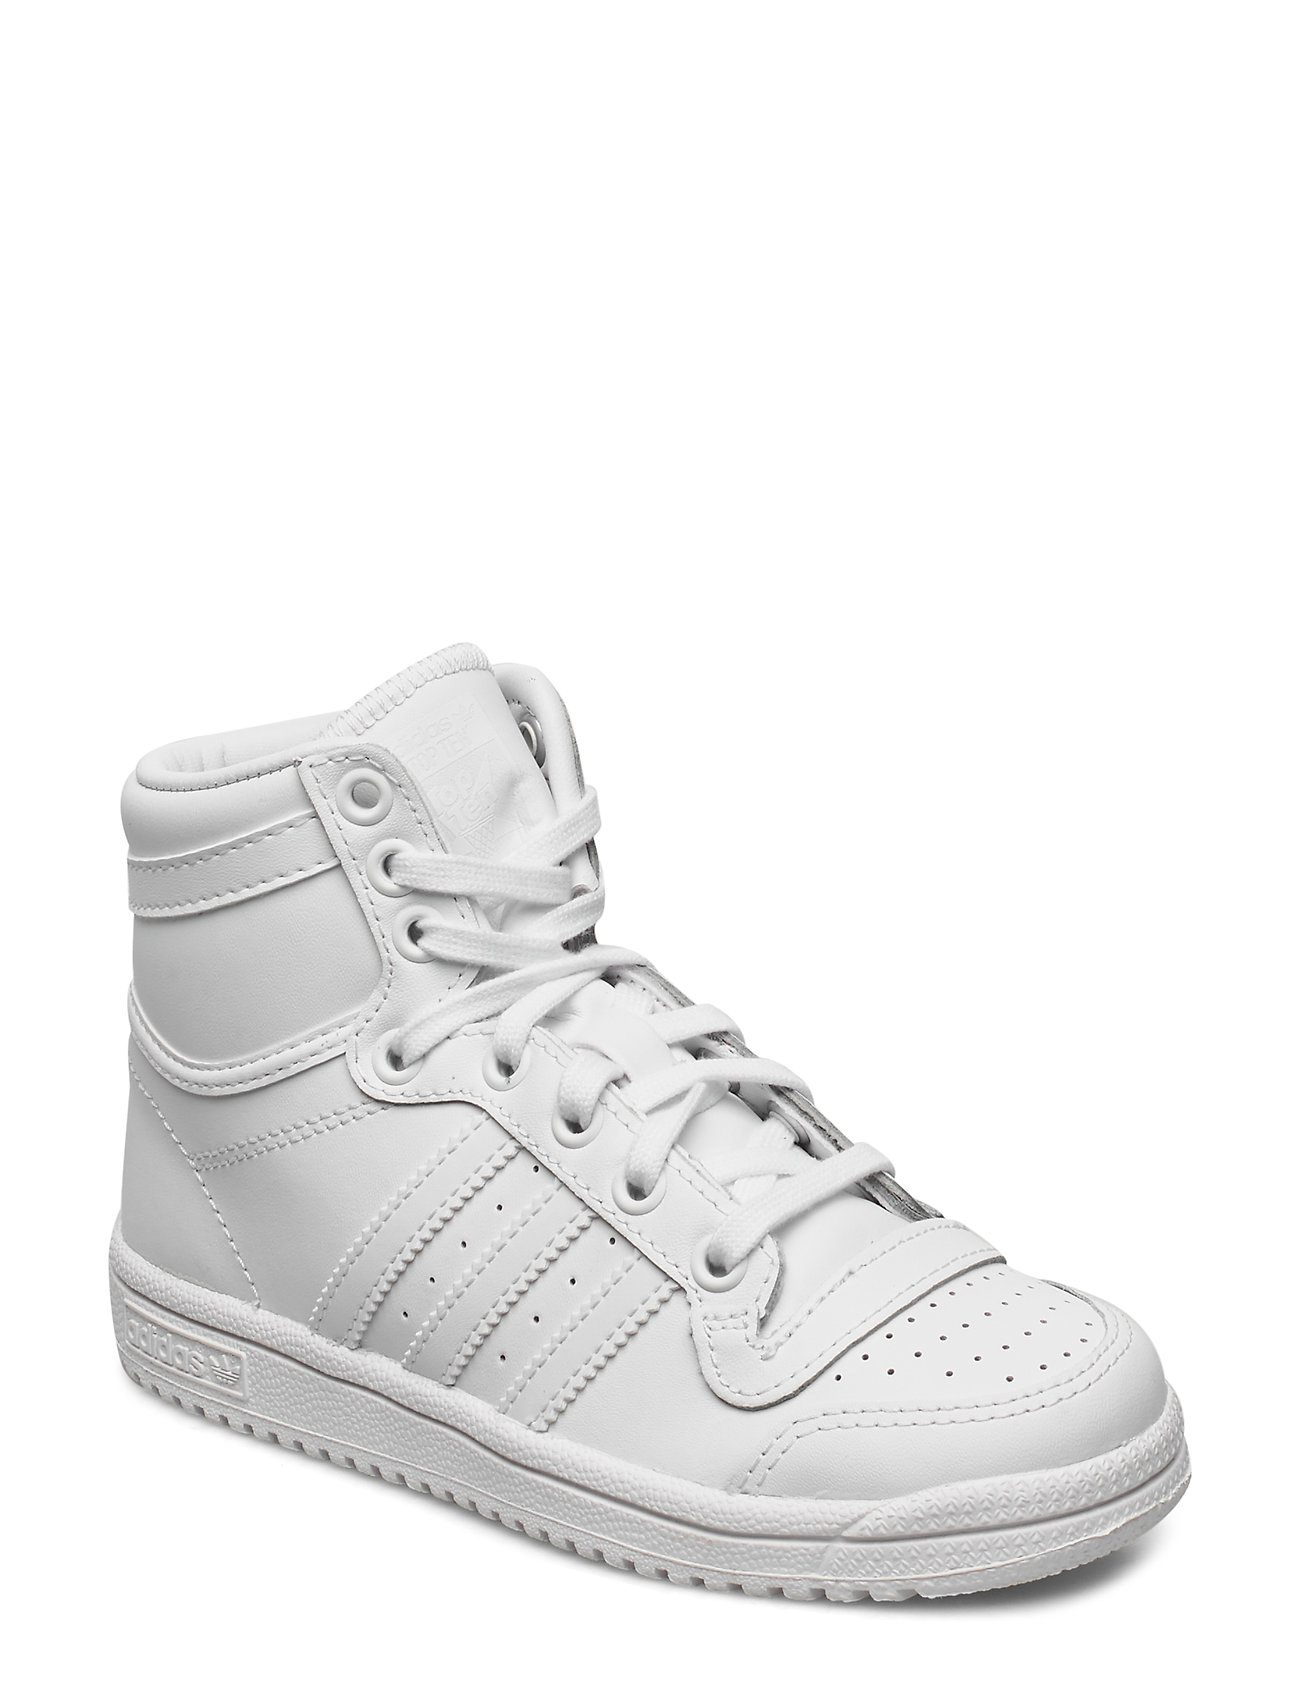 adidas Originals TOP TEN HI C - FTWWHT/FTWWHT/FTWWHT